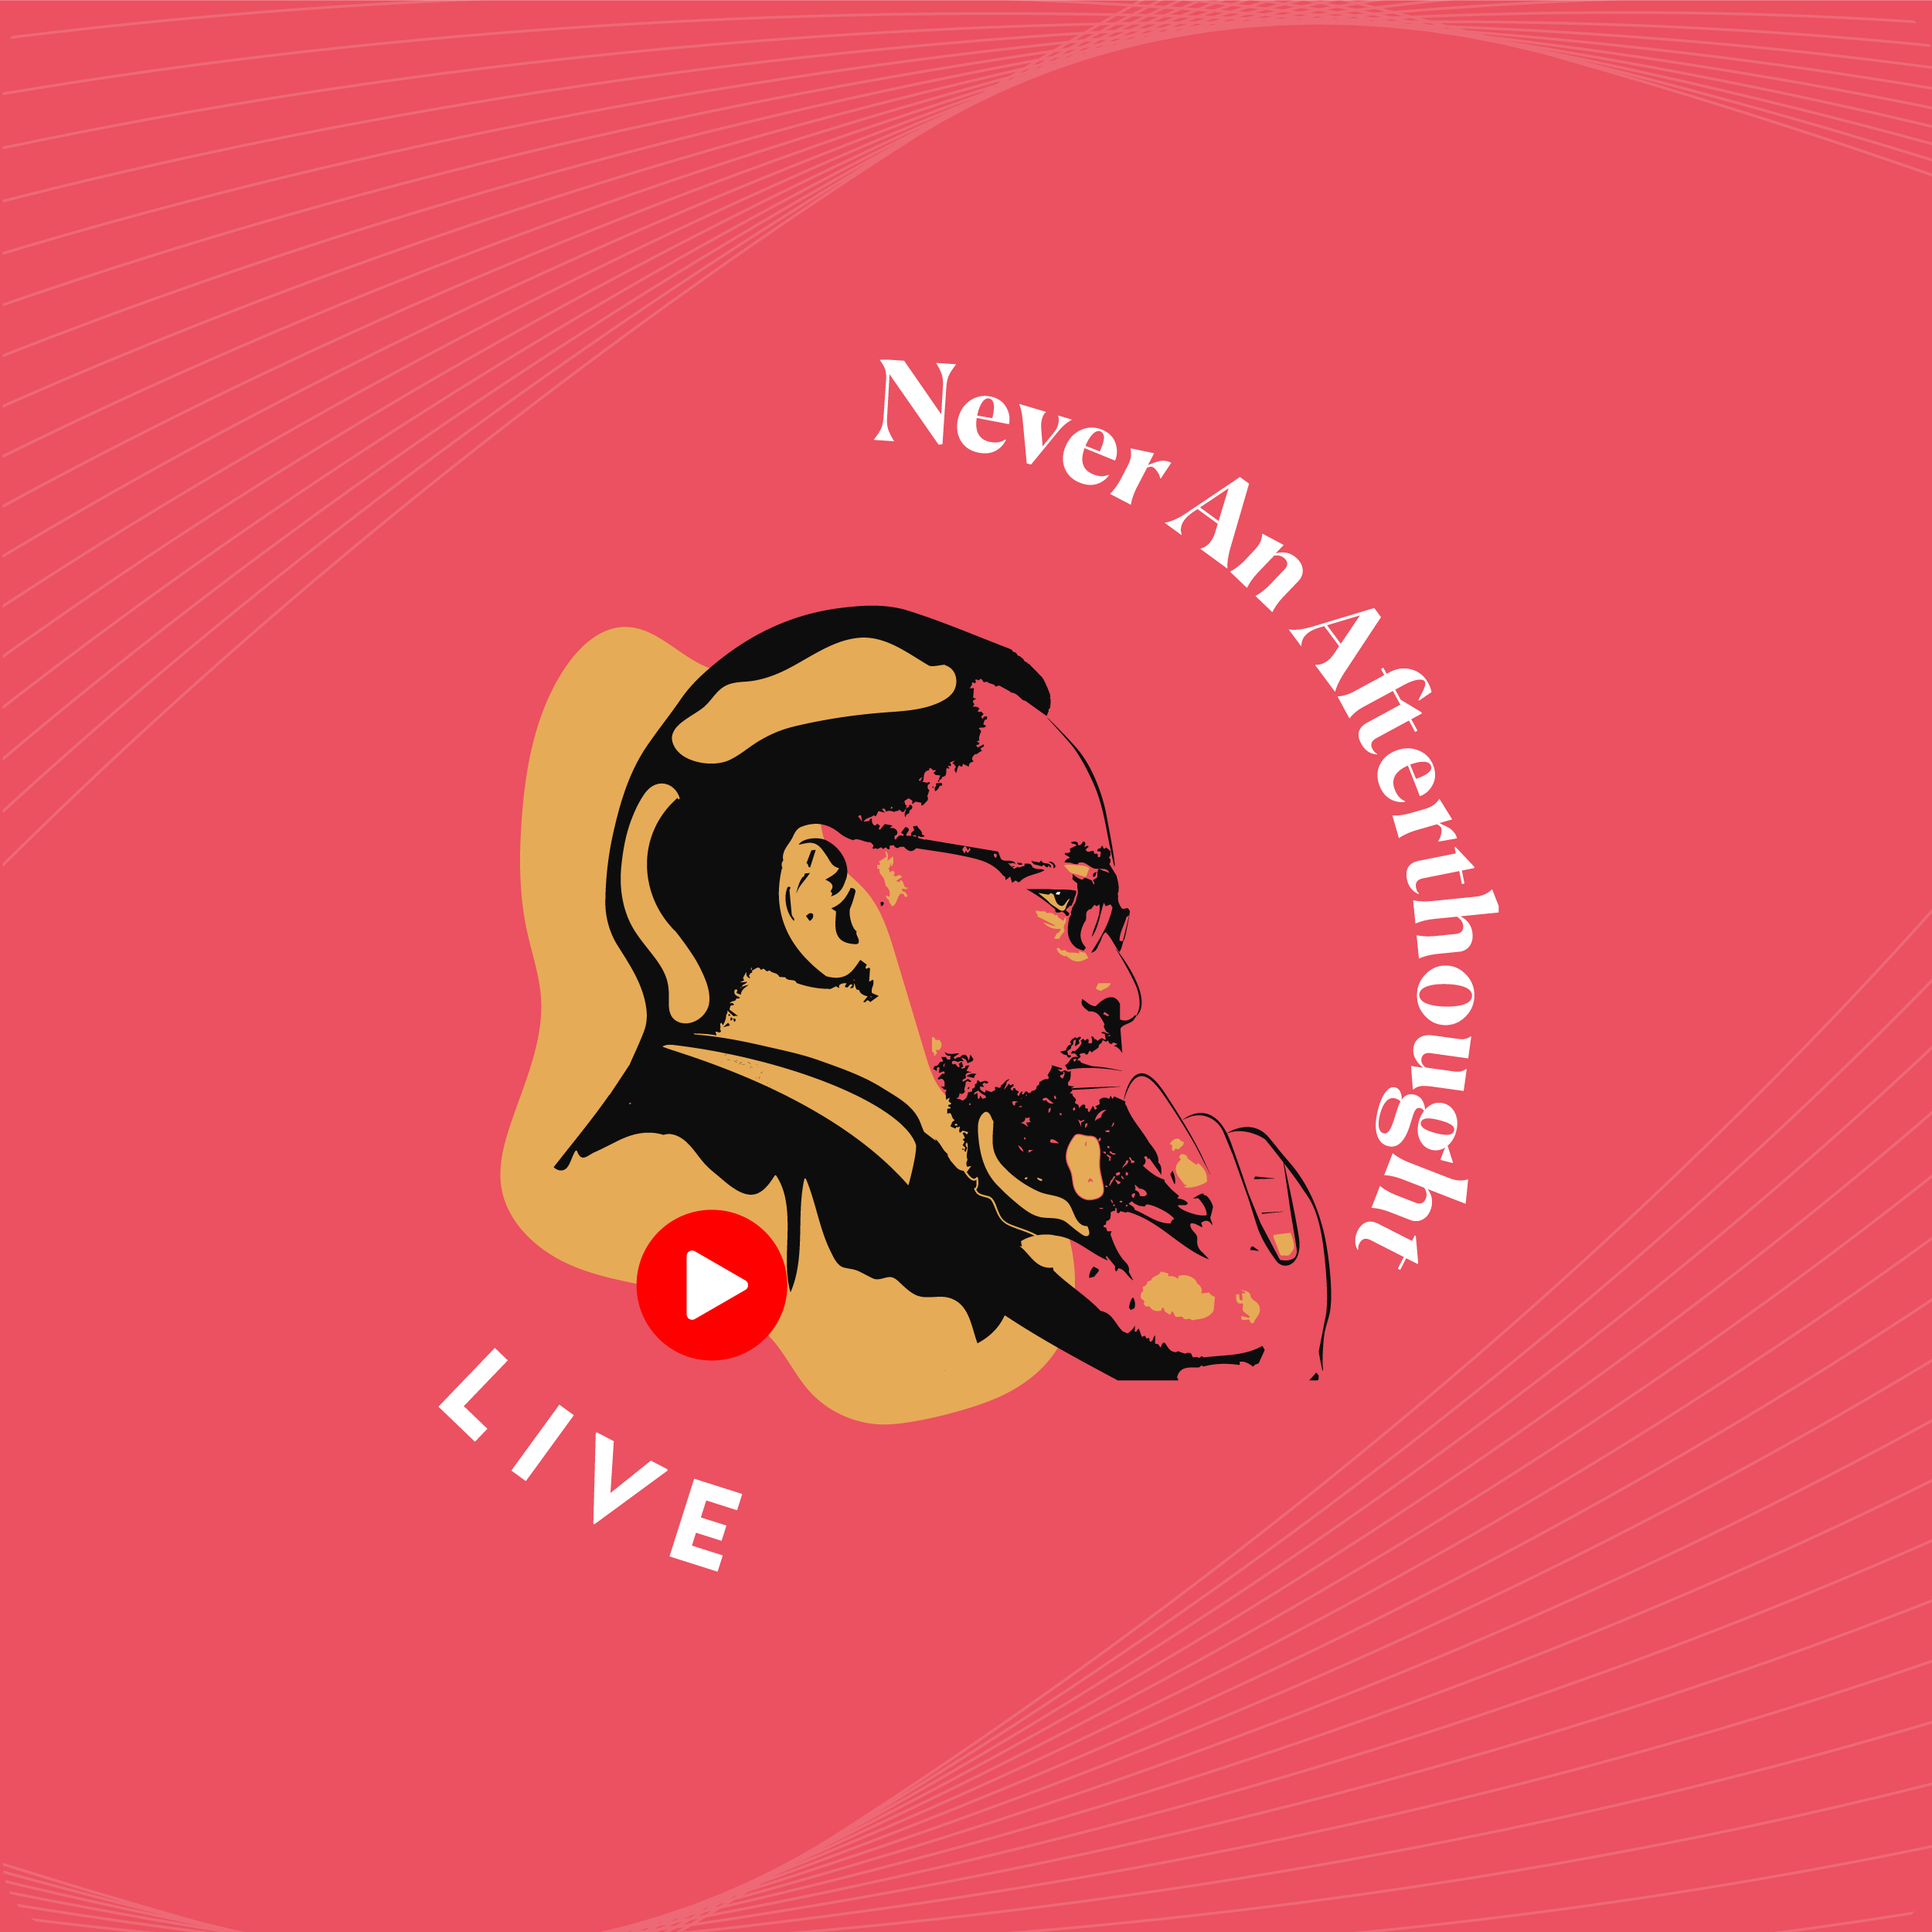 Never an Afterthought by Afolabi Sokpehi Imoukhuede Live Cover Art